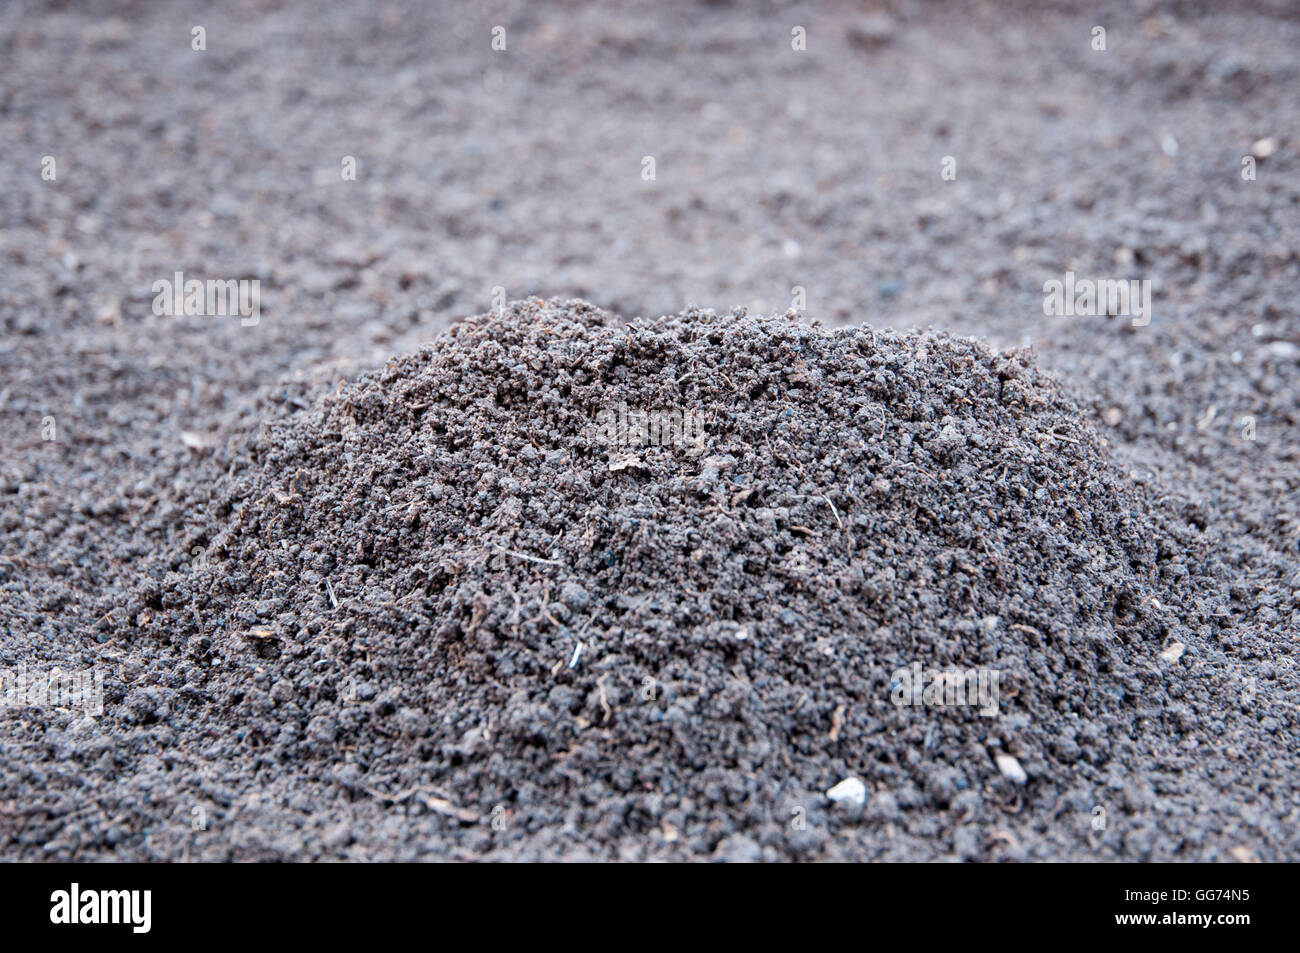 Soil pile- selective focus on the top - Stock Image